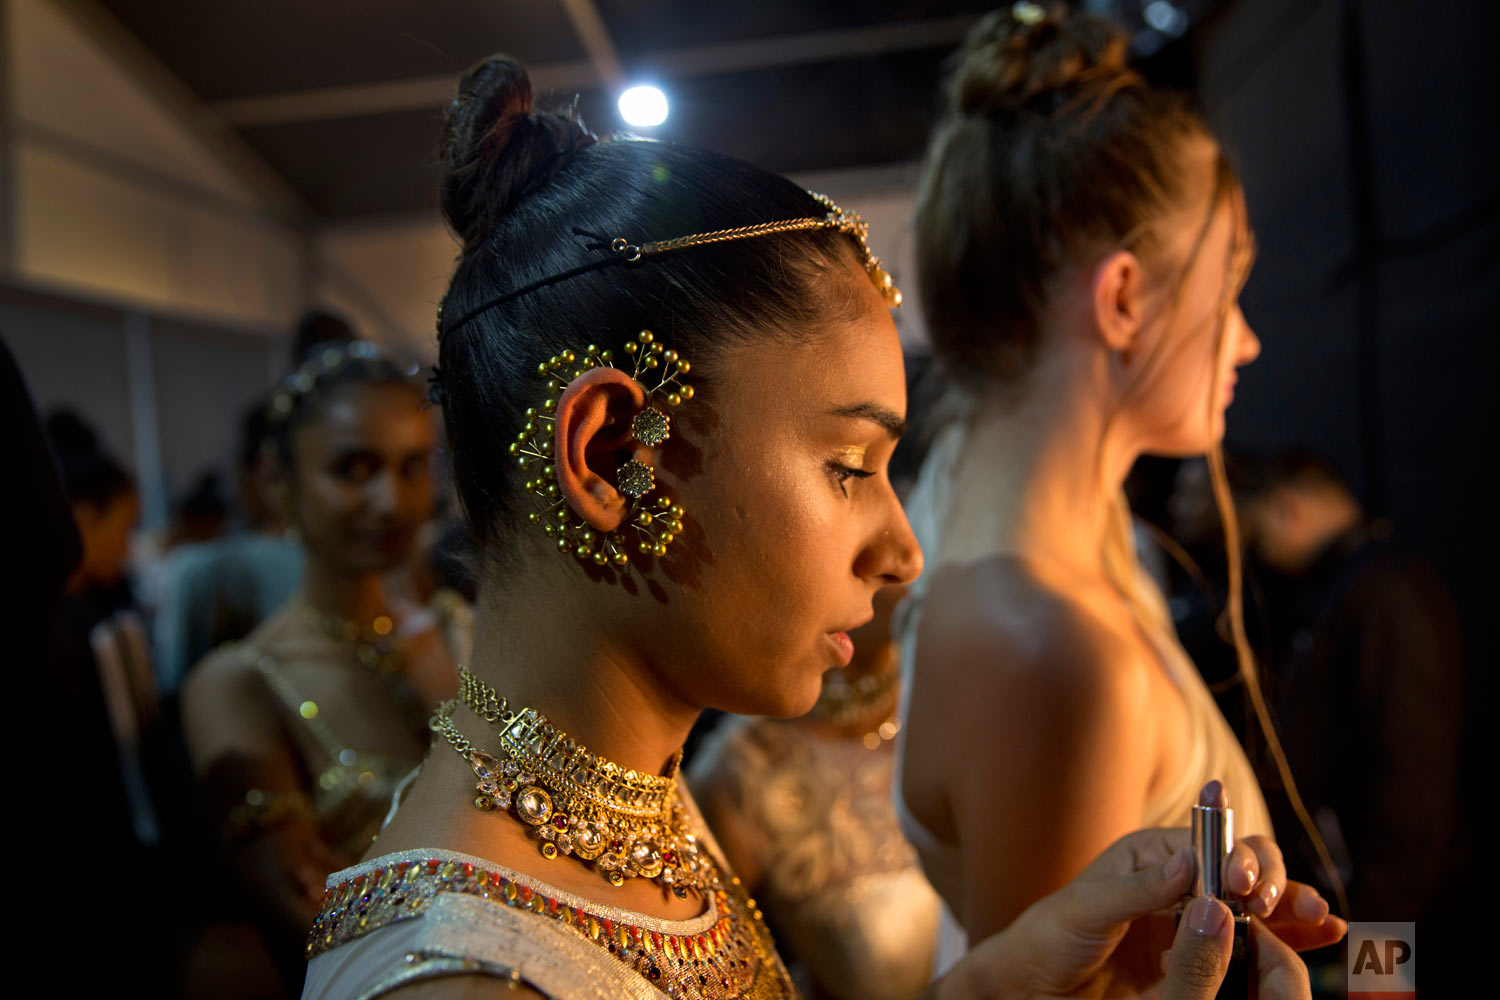 A models touches up her makeup before walking the ramp during Lotus Makeup India Fashion Week, on Saturday, March 16, 2019, in New Delhi, India. (AP Photo/Manish Swarup)